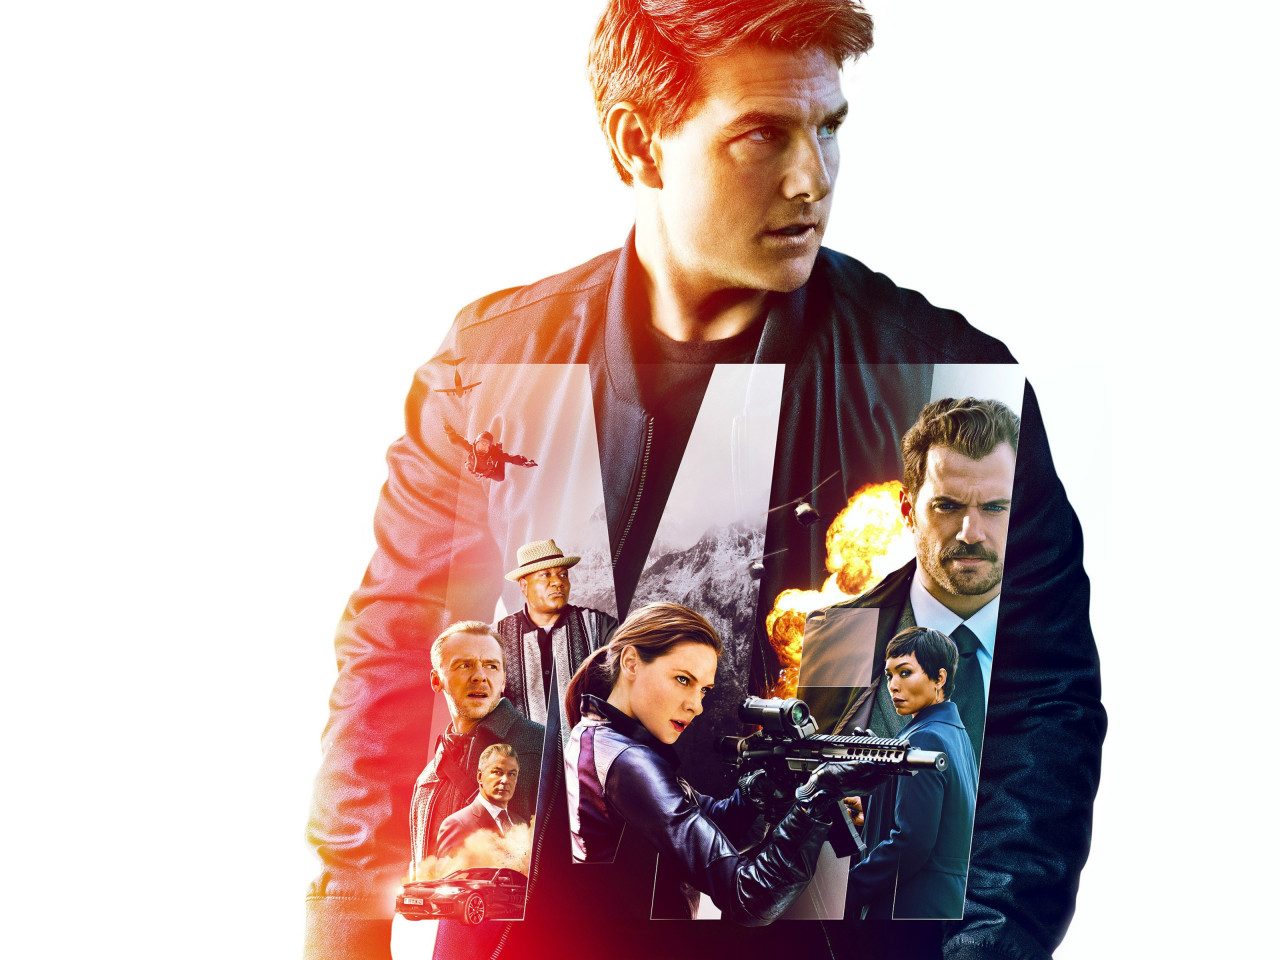 Mission: Impossible Fallout wallpaper 1280x960